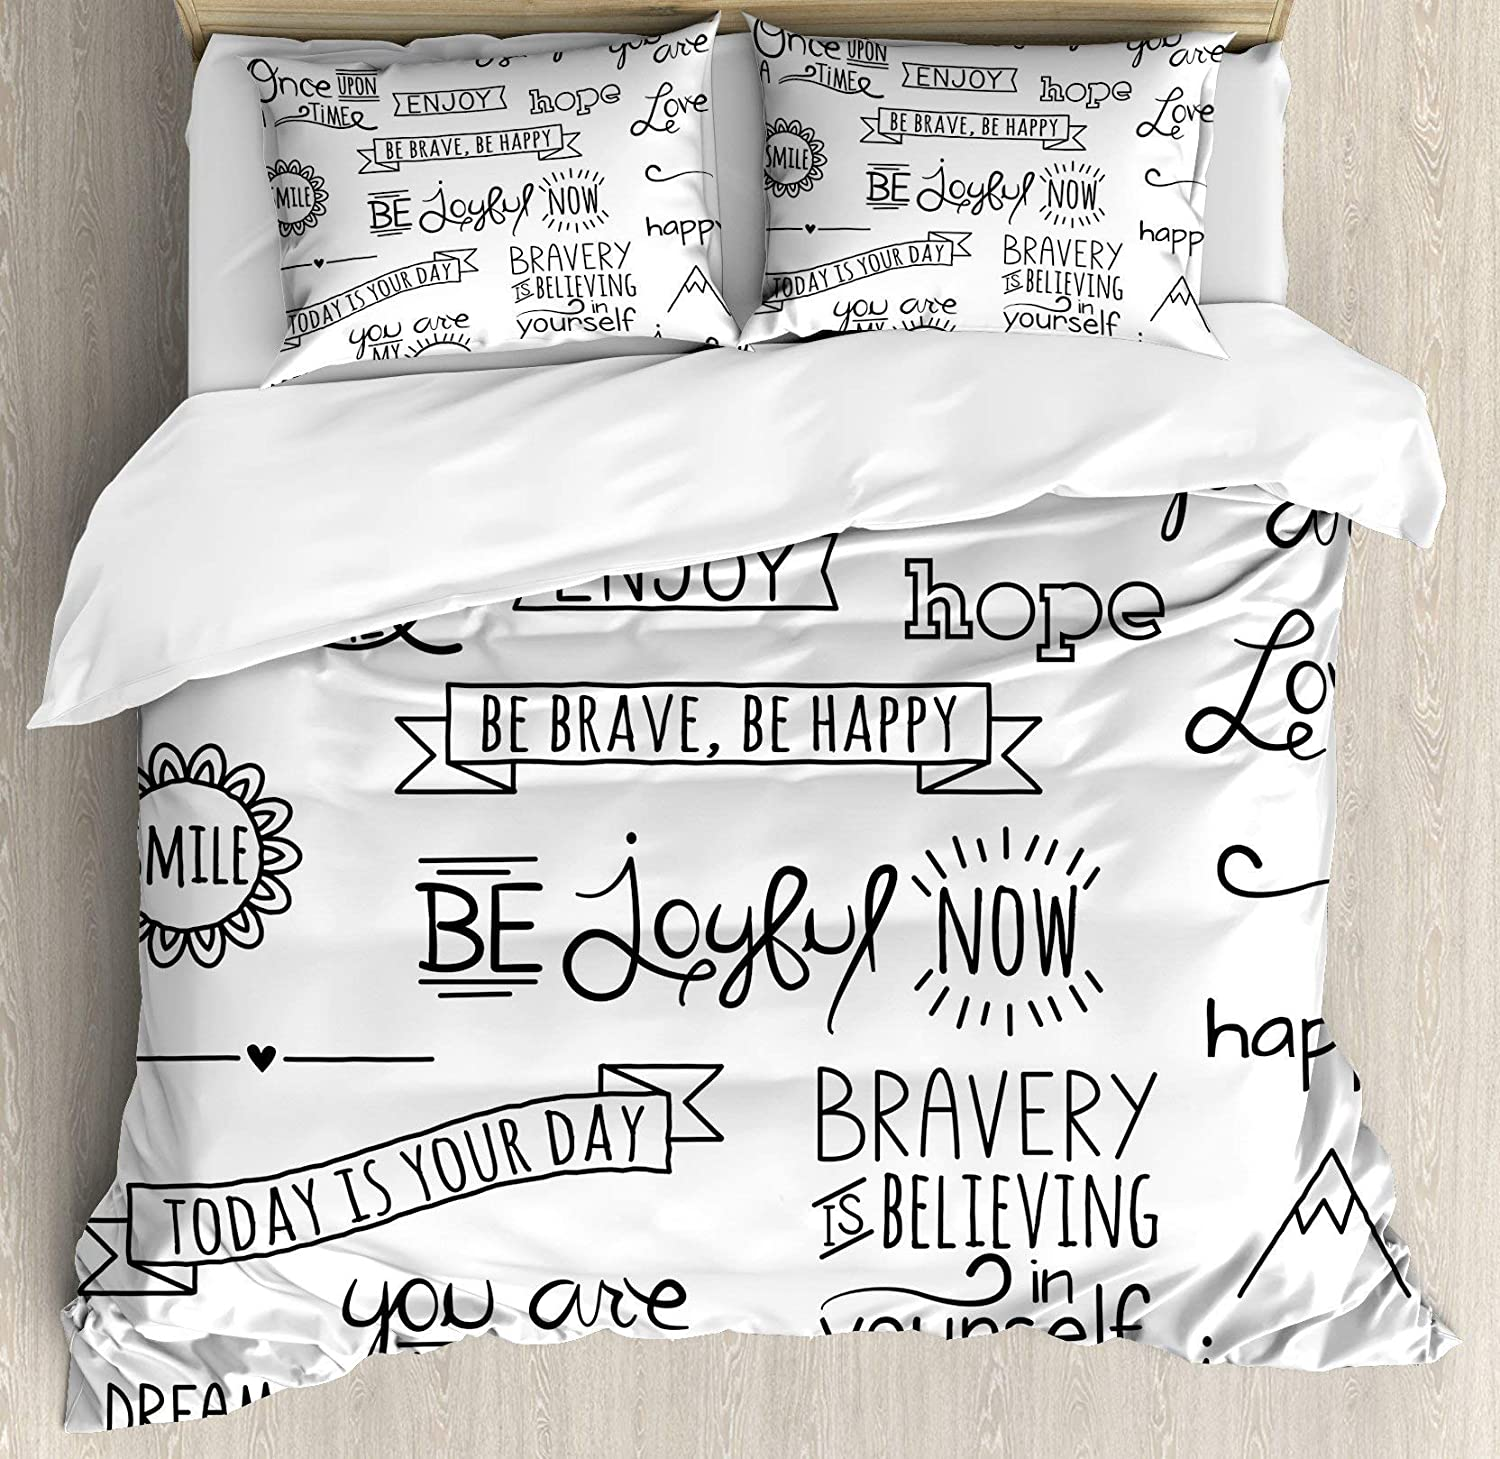 Multi 4 Twin BULING Adventure 4pc Bedding Set Twin Size, Various Quotes on Happiness Self Value Uplifting Phrases Being Who You are Floral Lightweight Microfiber Duvet Cover Set, Black White